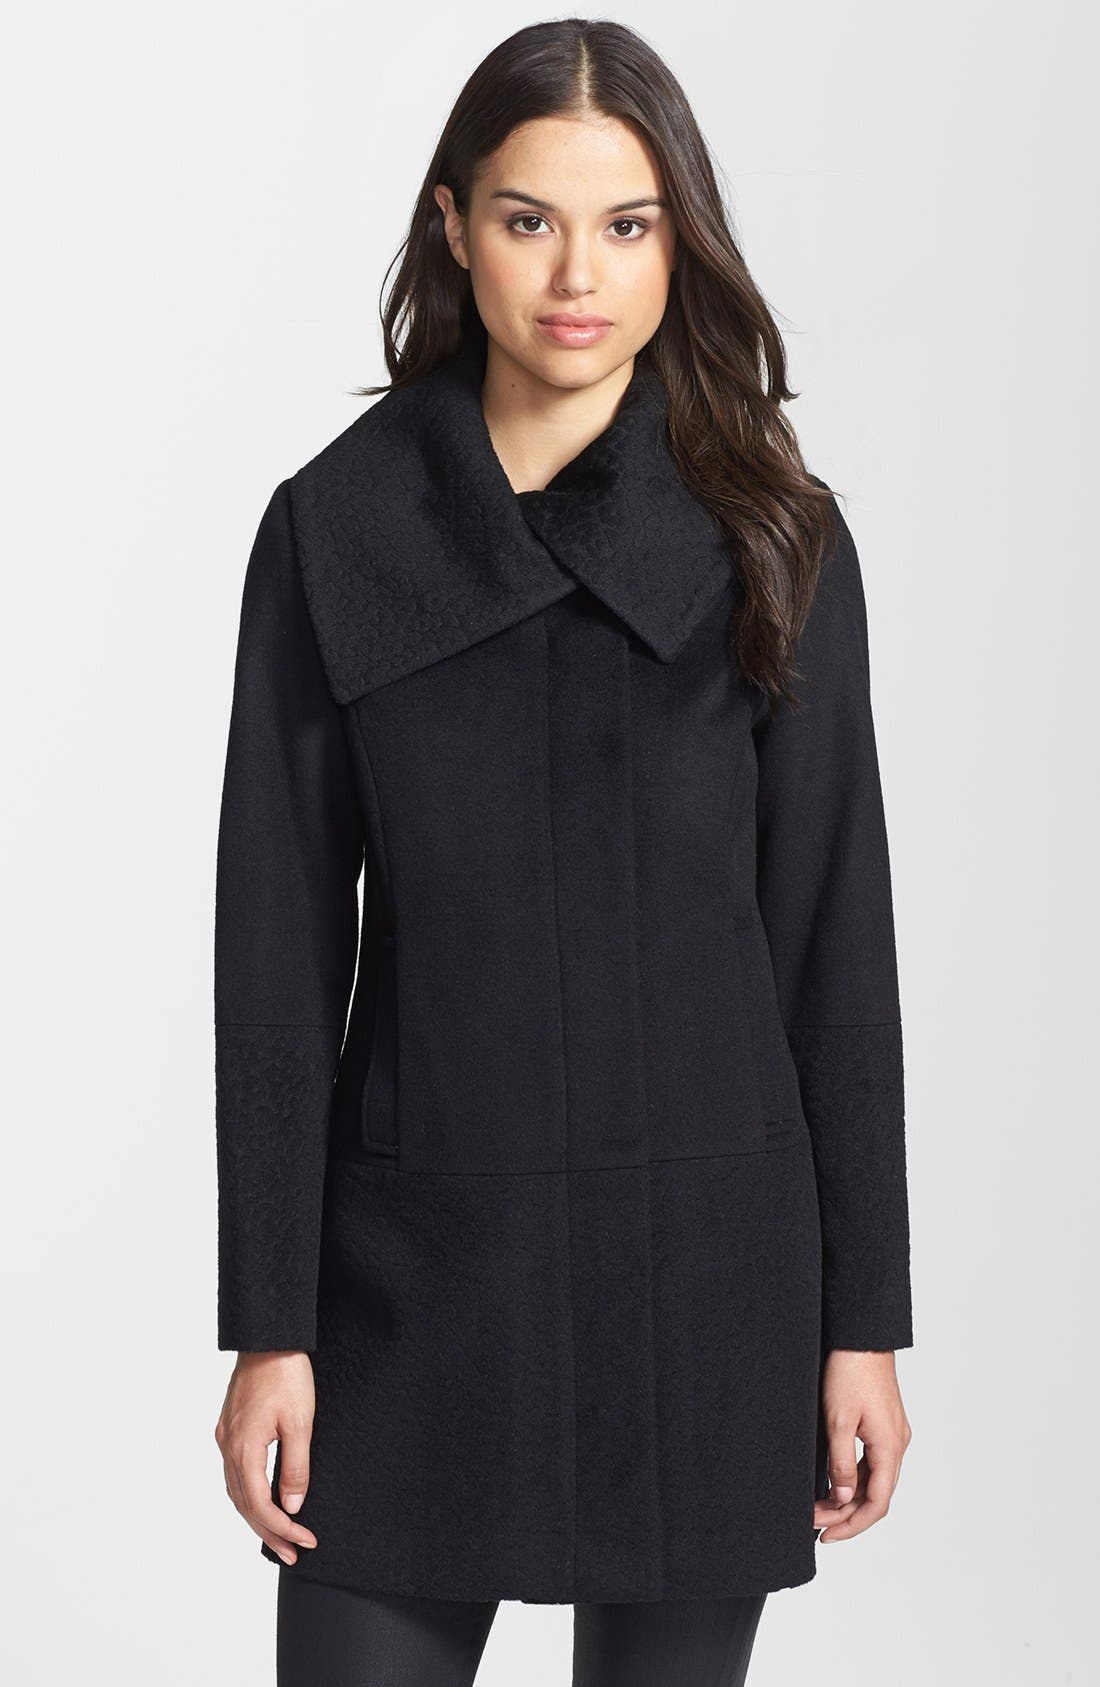 Solid & Jacquard Wool Blend Coat, Main, color, 001